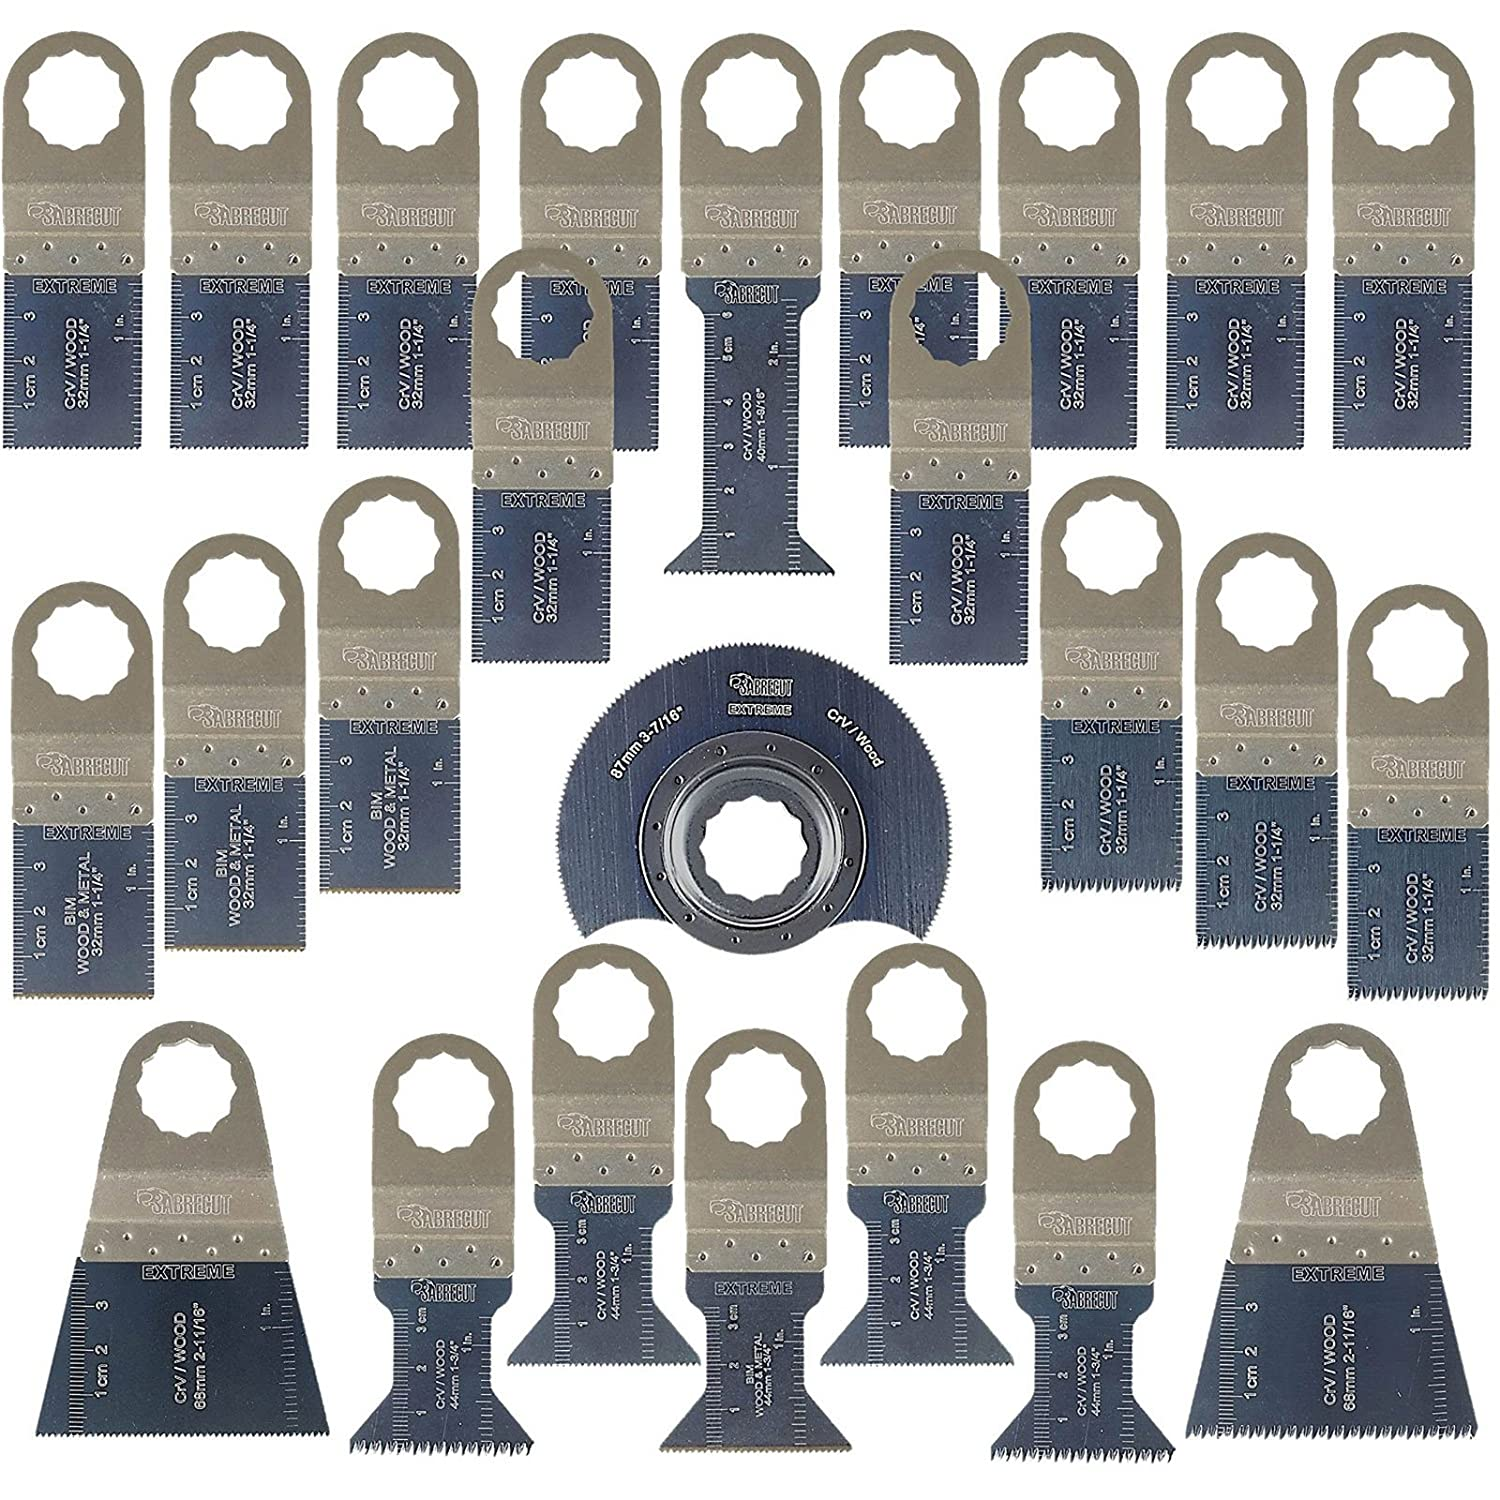 25 x SabreCut SCK25A Premium OMT Mix Blades for Fein SuperCut and Festool Vecturo Oscillating Multitool Multi Tool Accessories